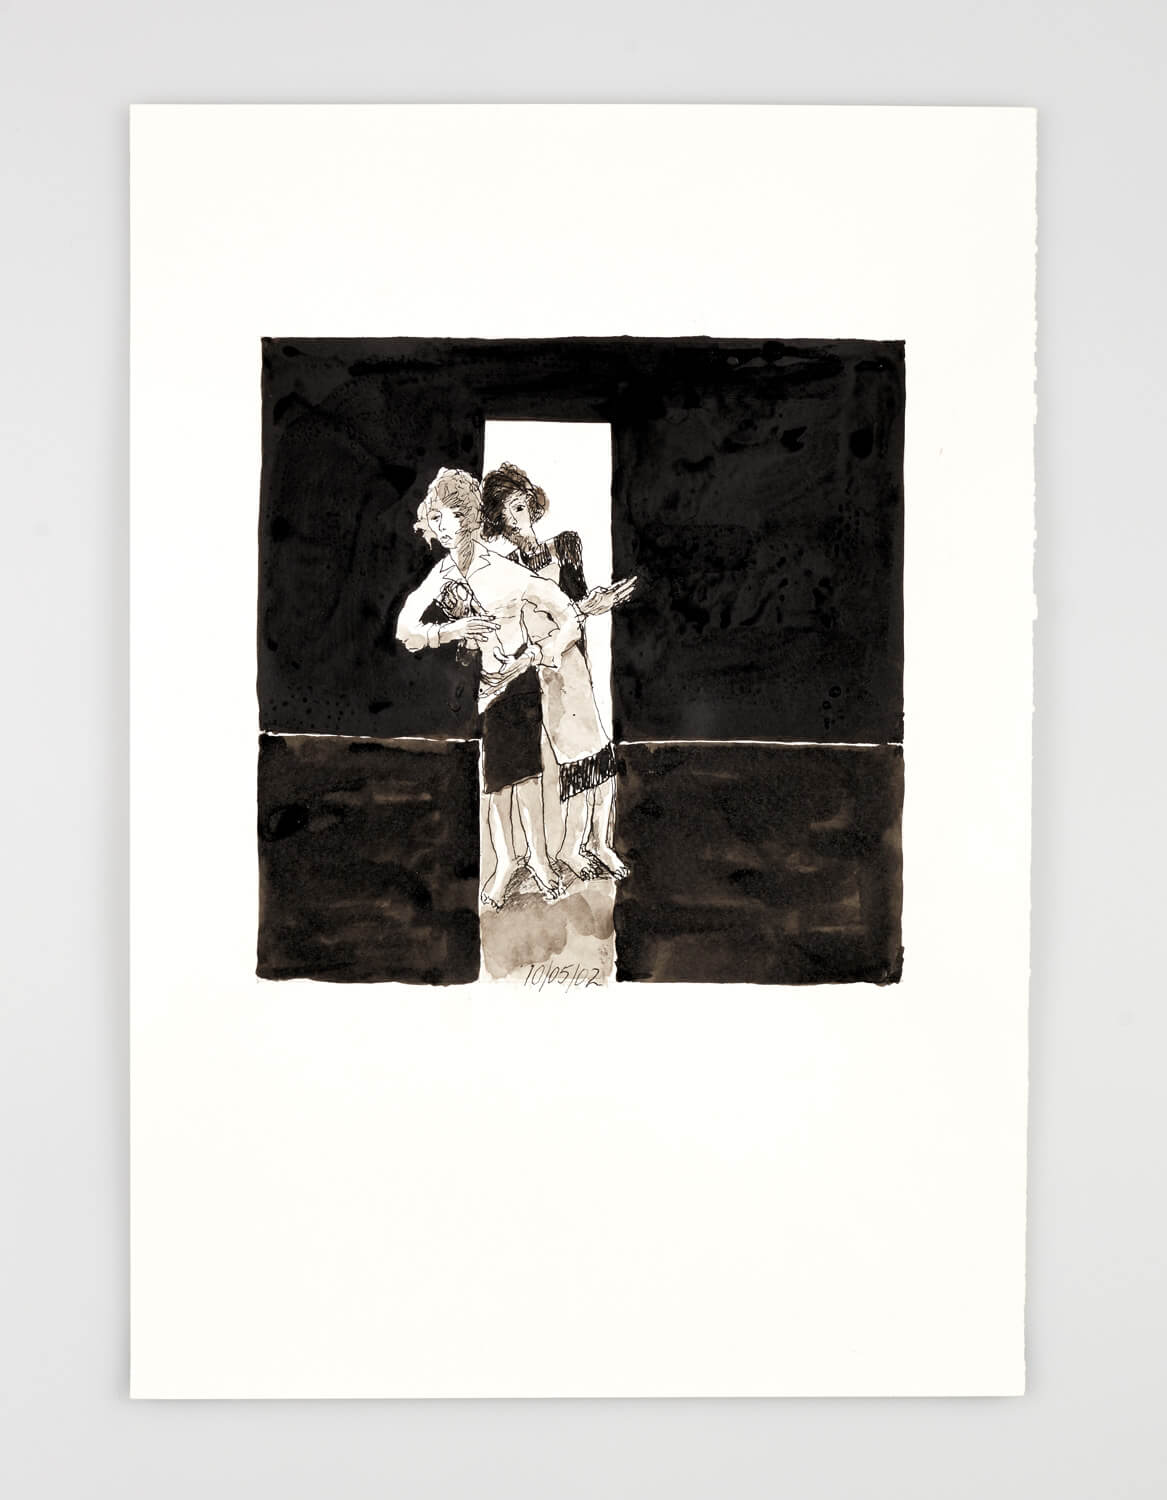 JB069 - Two Women - Being dressed - 2002 - 50 x 35 cm - Indian ink and wash on paper